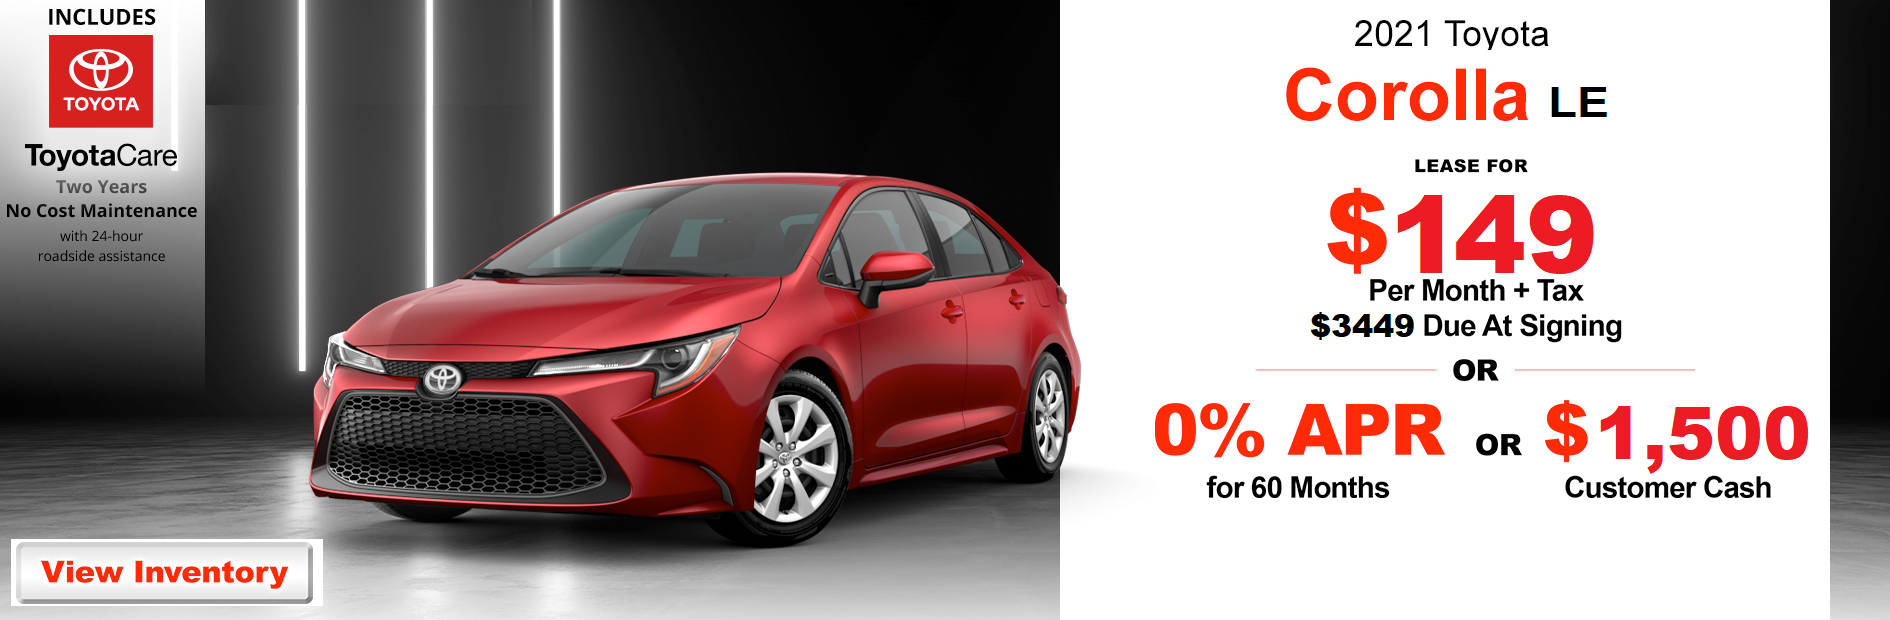 Toyota Of Redlands 2021 Corolla LE 3.7.21 Offer